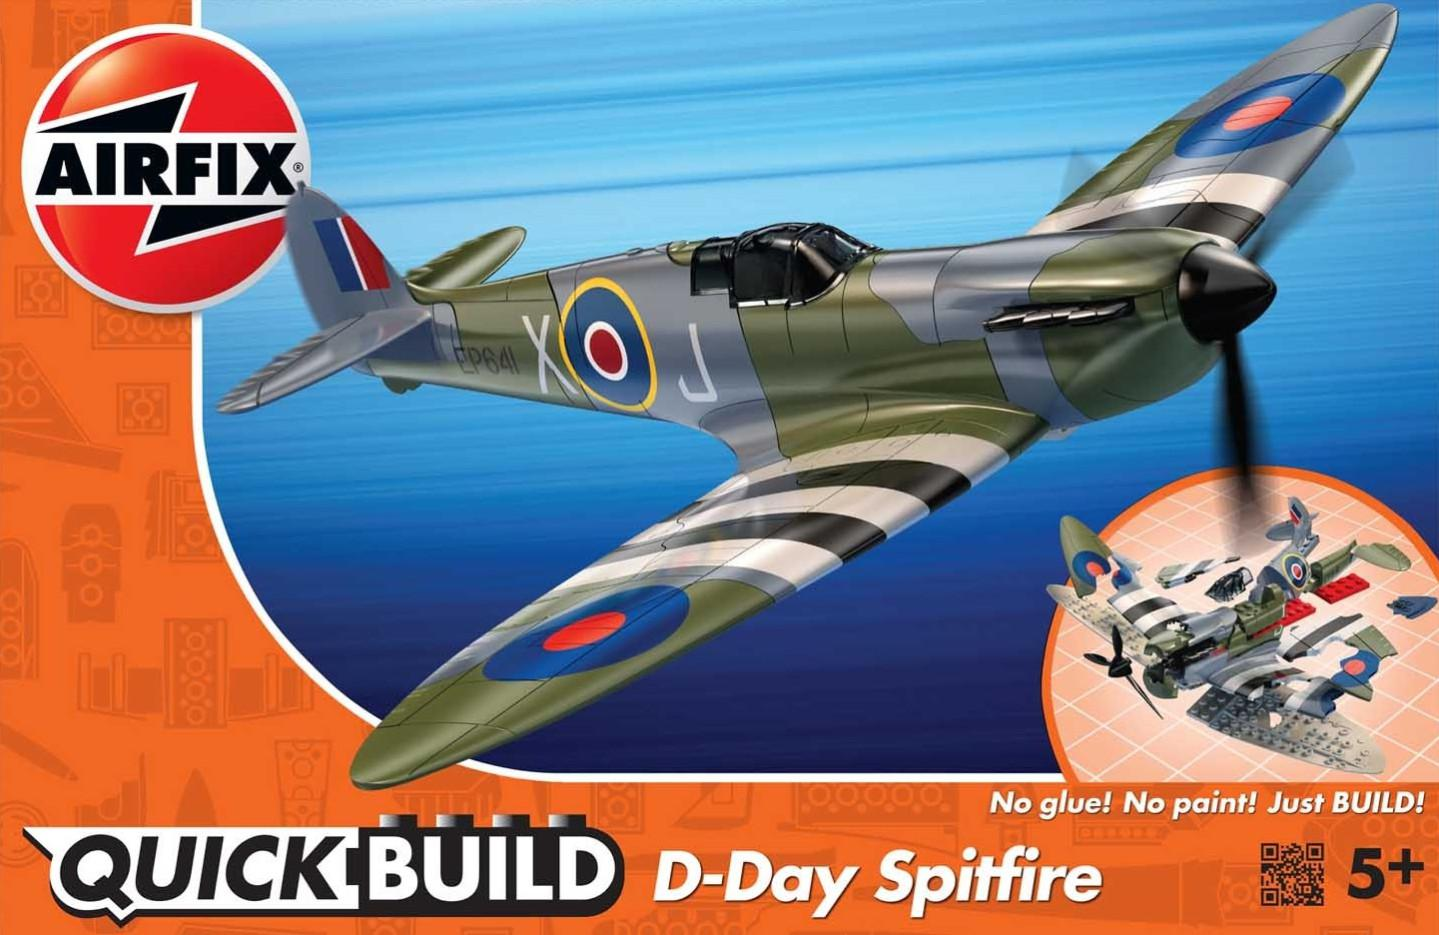 Airfix D-Day Spitfire Quick Build J6045